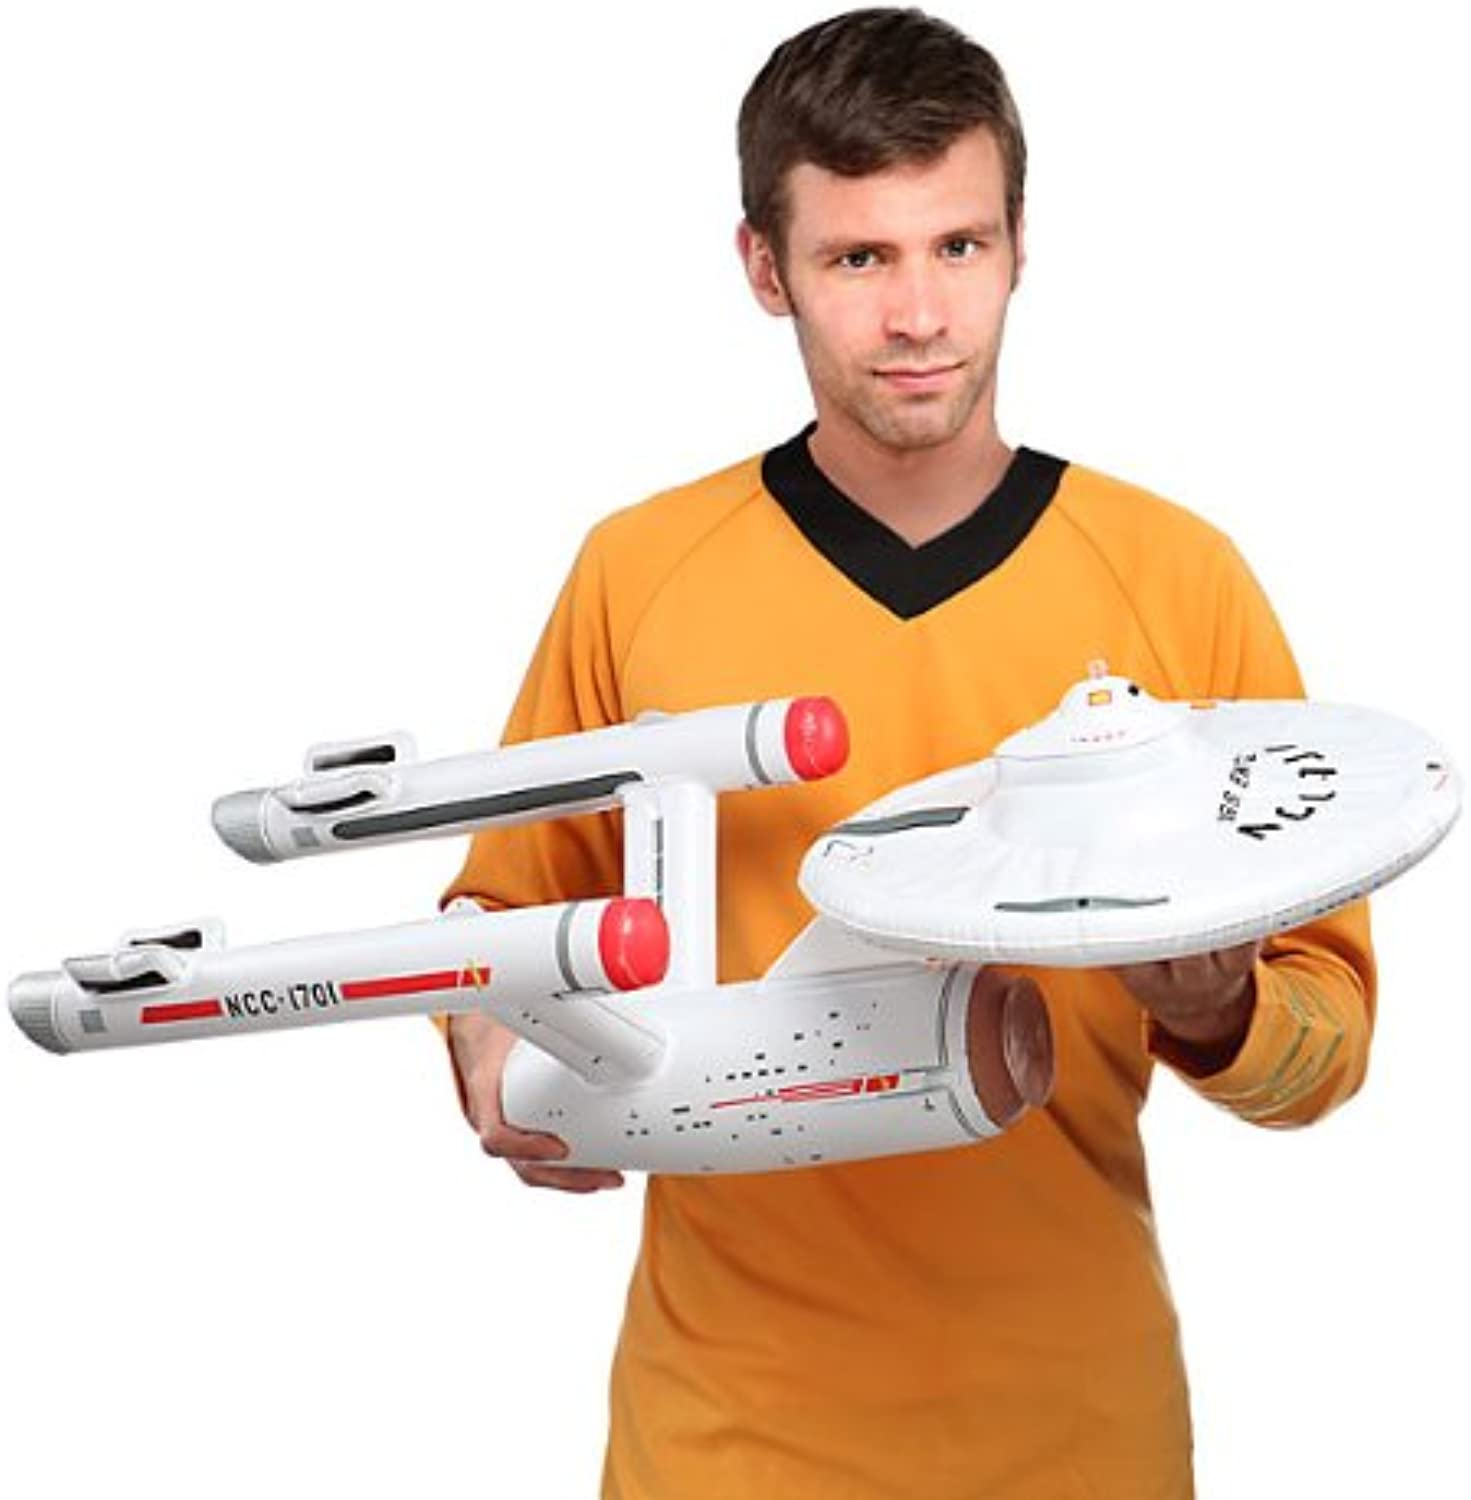 Star Trek USS Enterprise Inflatable Collectible - Expands to 3 Feet